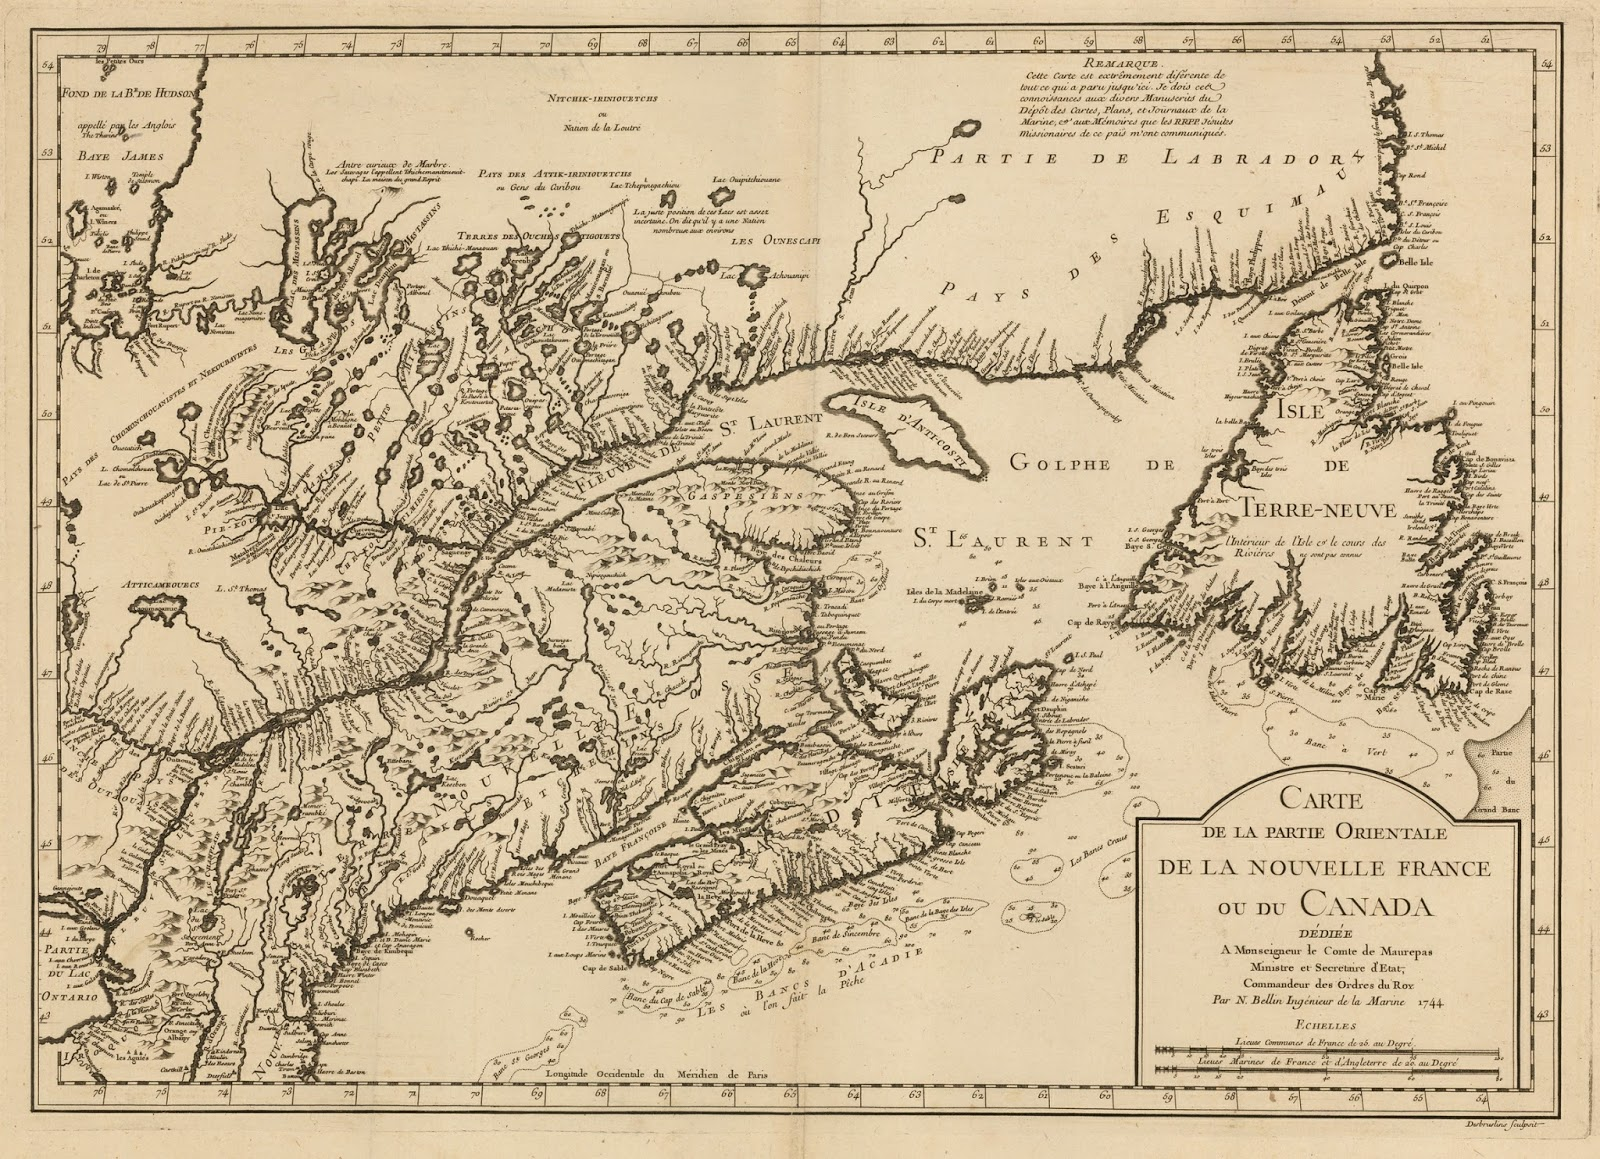 in the 1720s and 30s the main area of conflict between the french and british in north america concerned the region north of new england and south of the